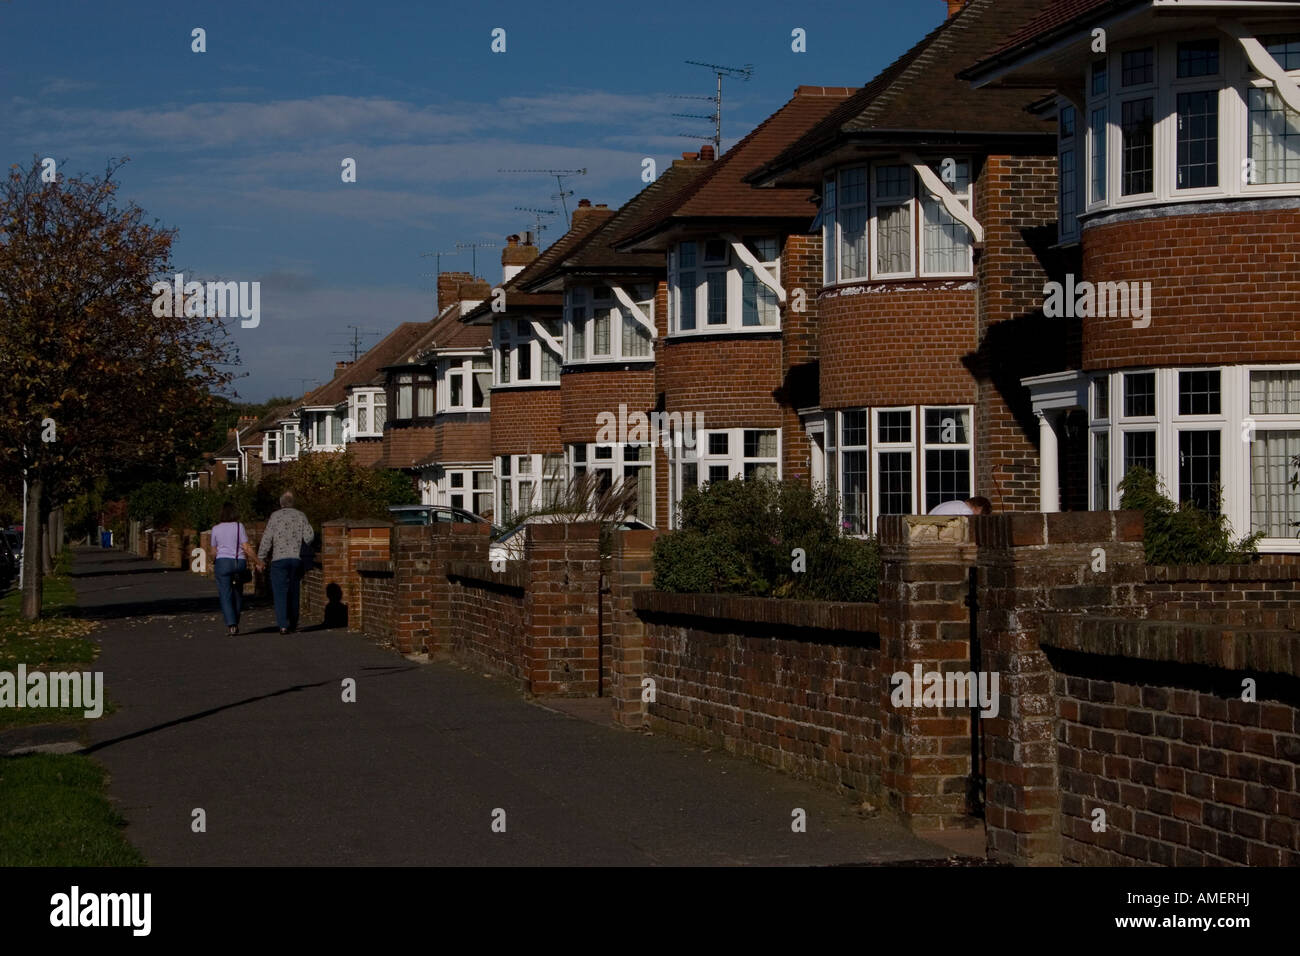 c 1930 s row of bow fronted detached houses Goring on Sea England - Stock Image